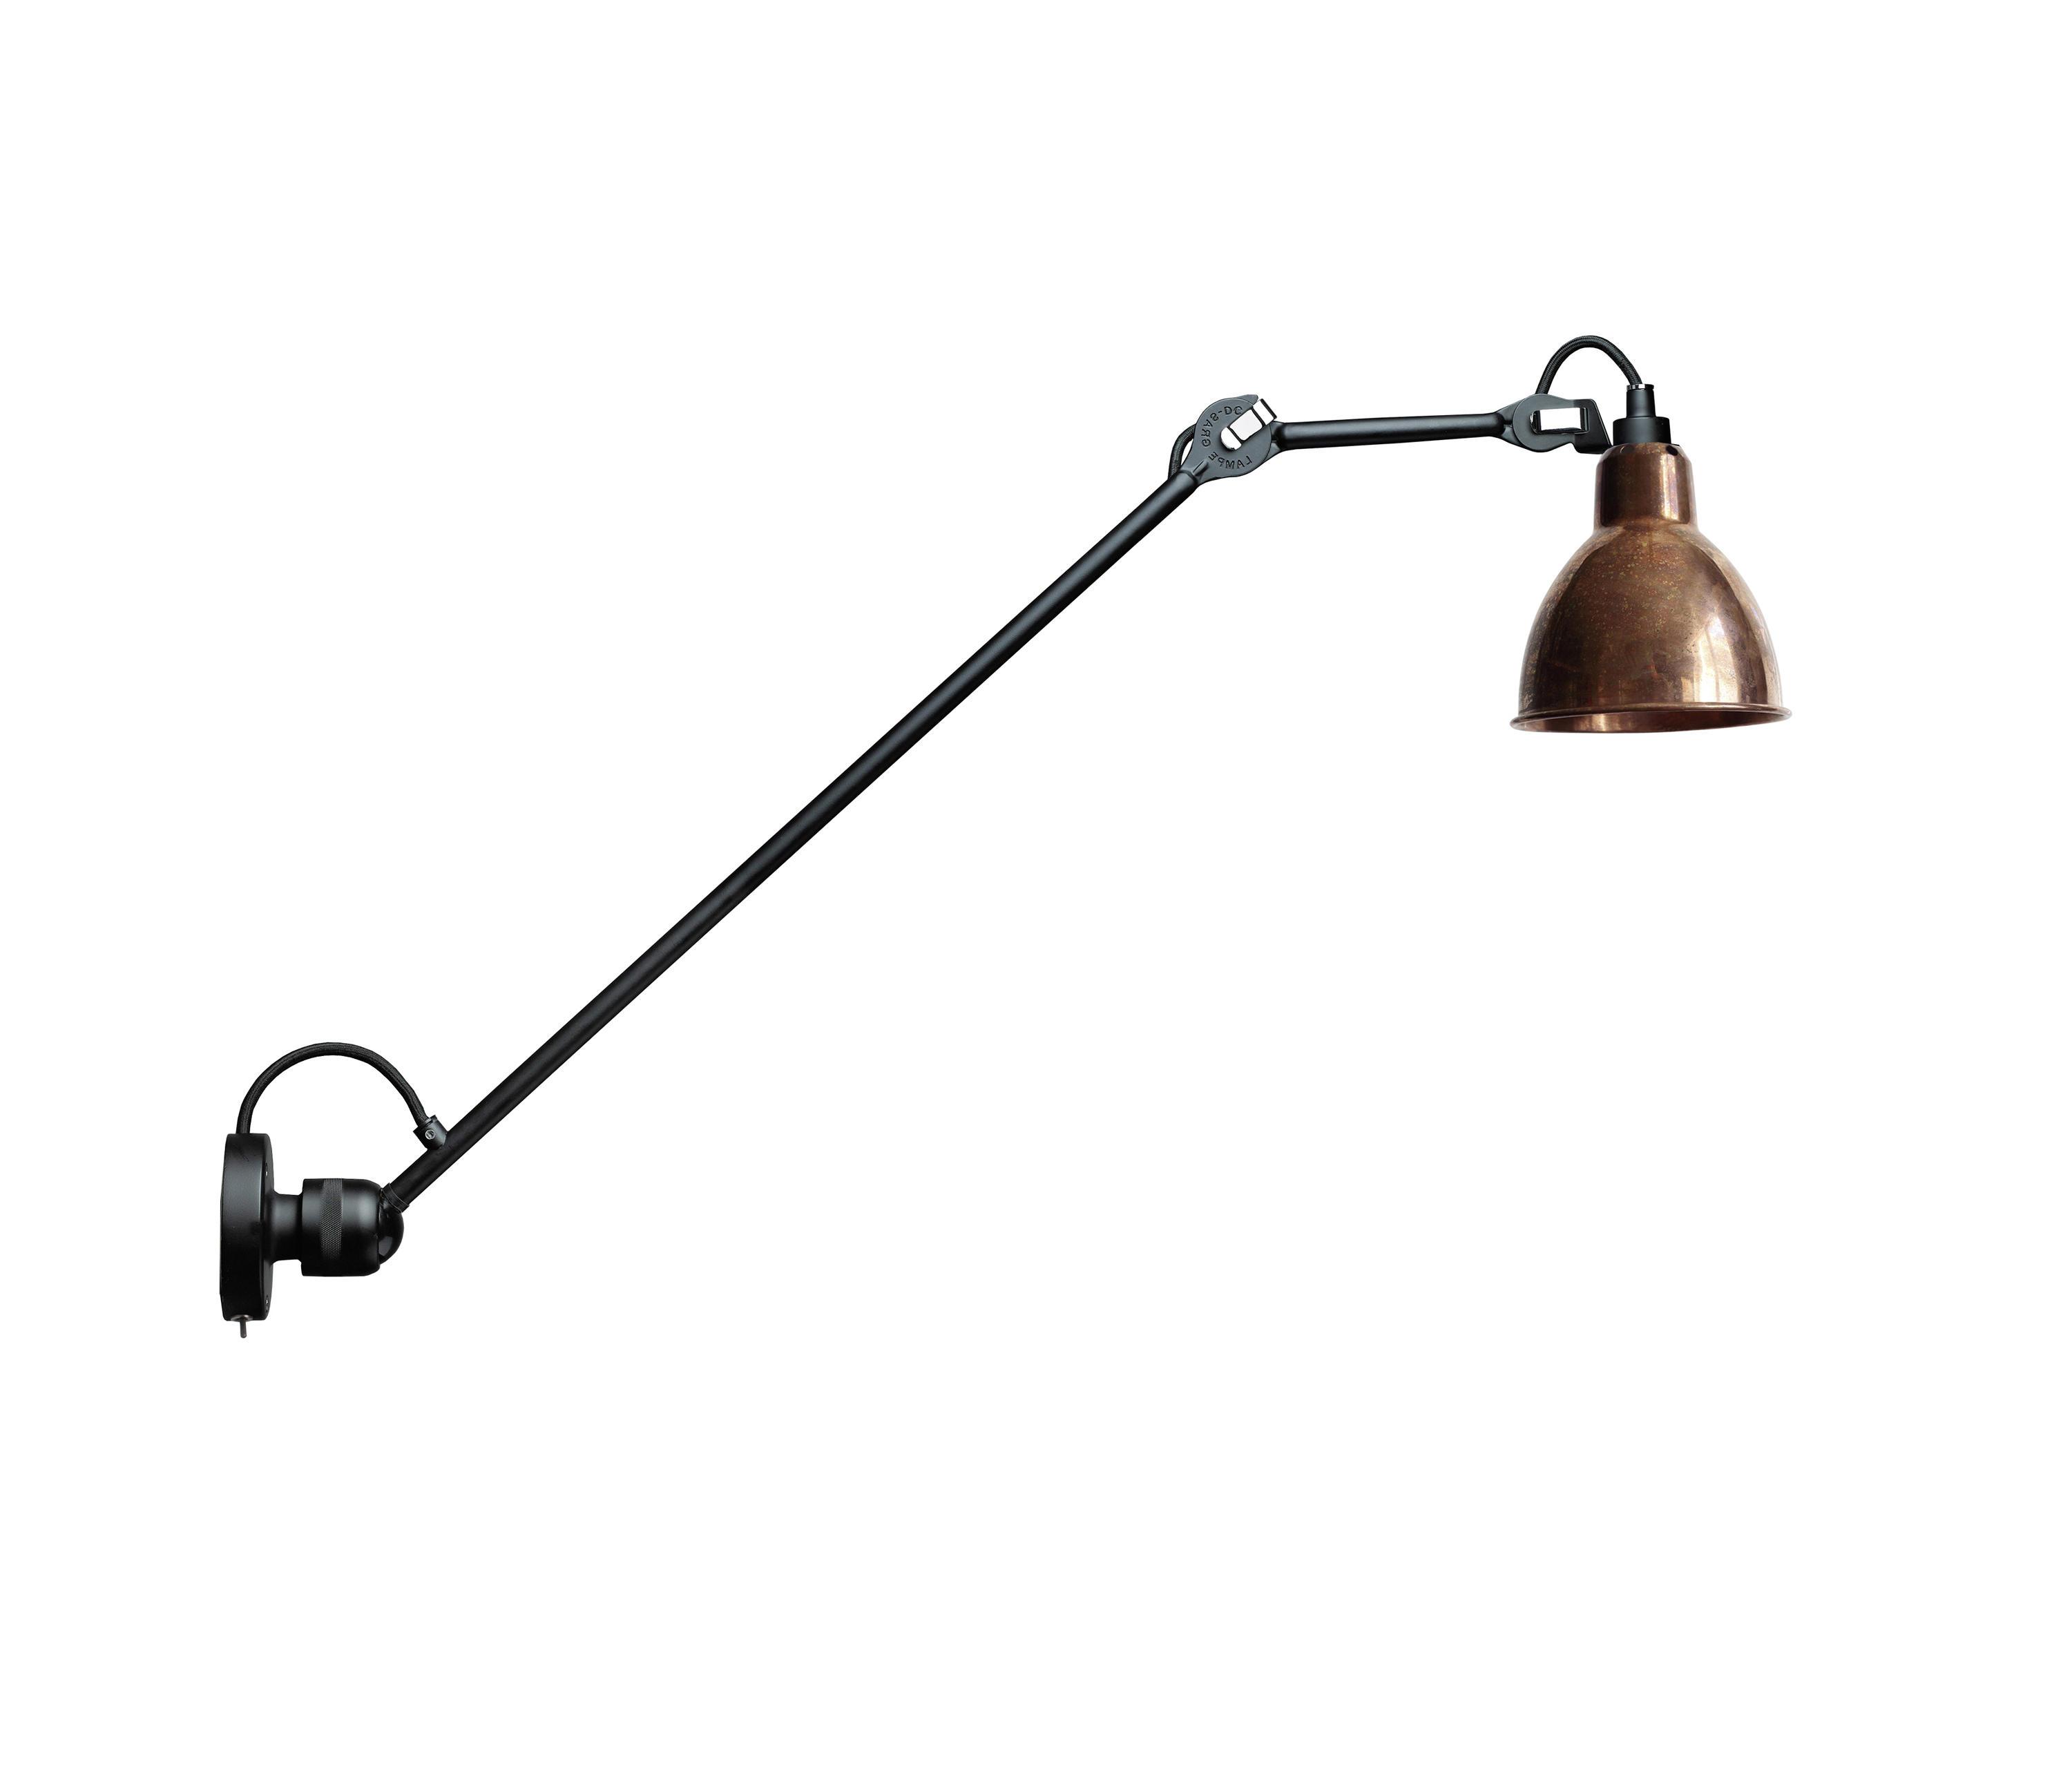 lampe gras n 304 l60 sw copper general lighting from dcw ditions architonic. Black Bedroom Furniture Sets. Home Design Ideas